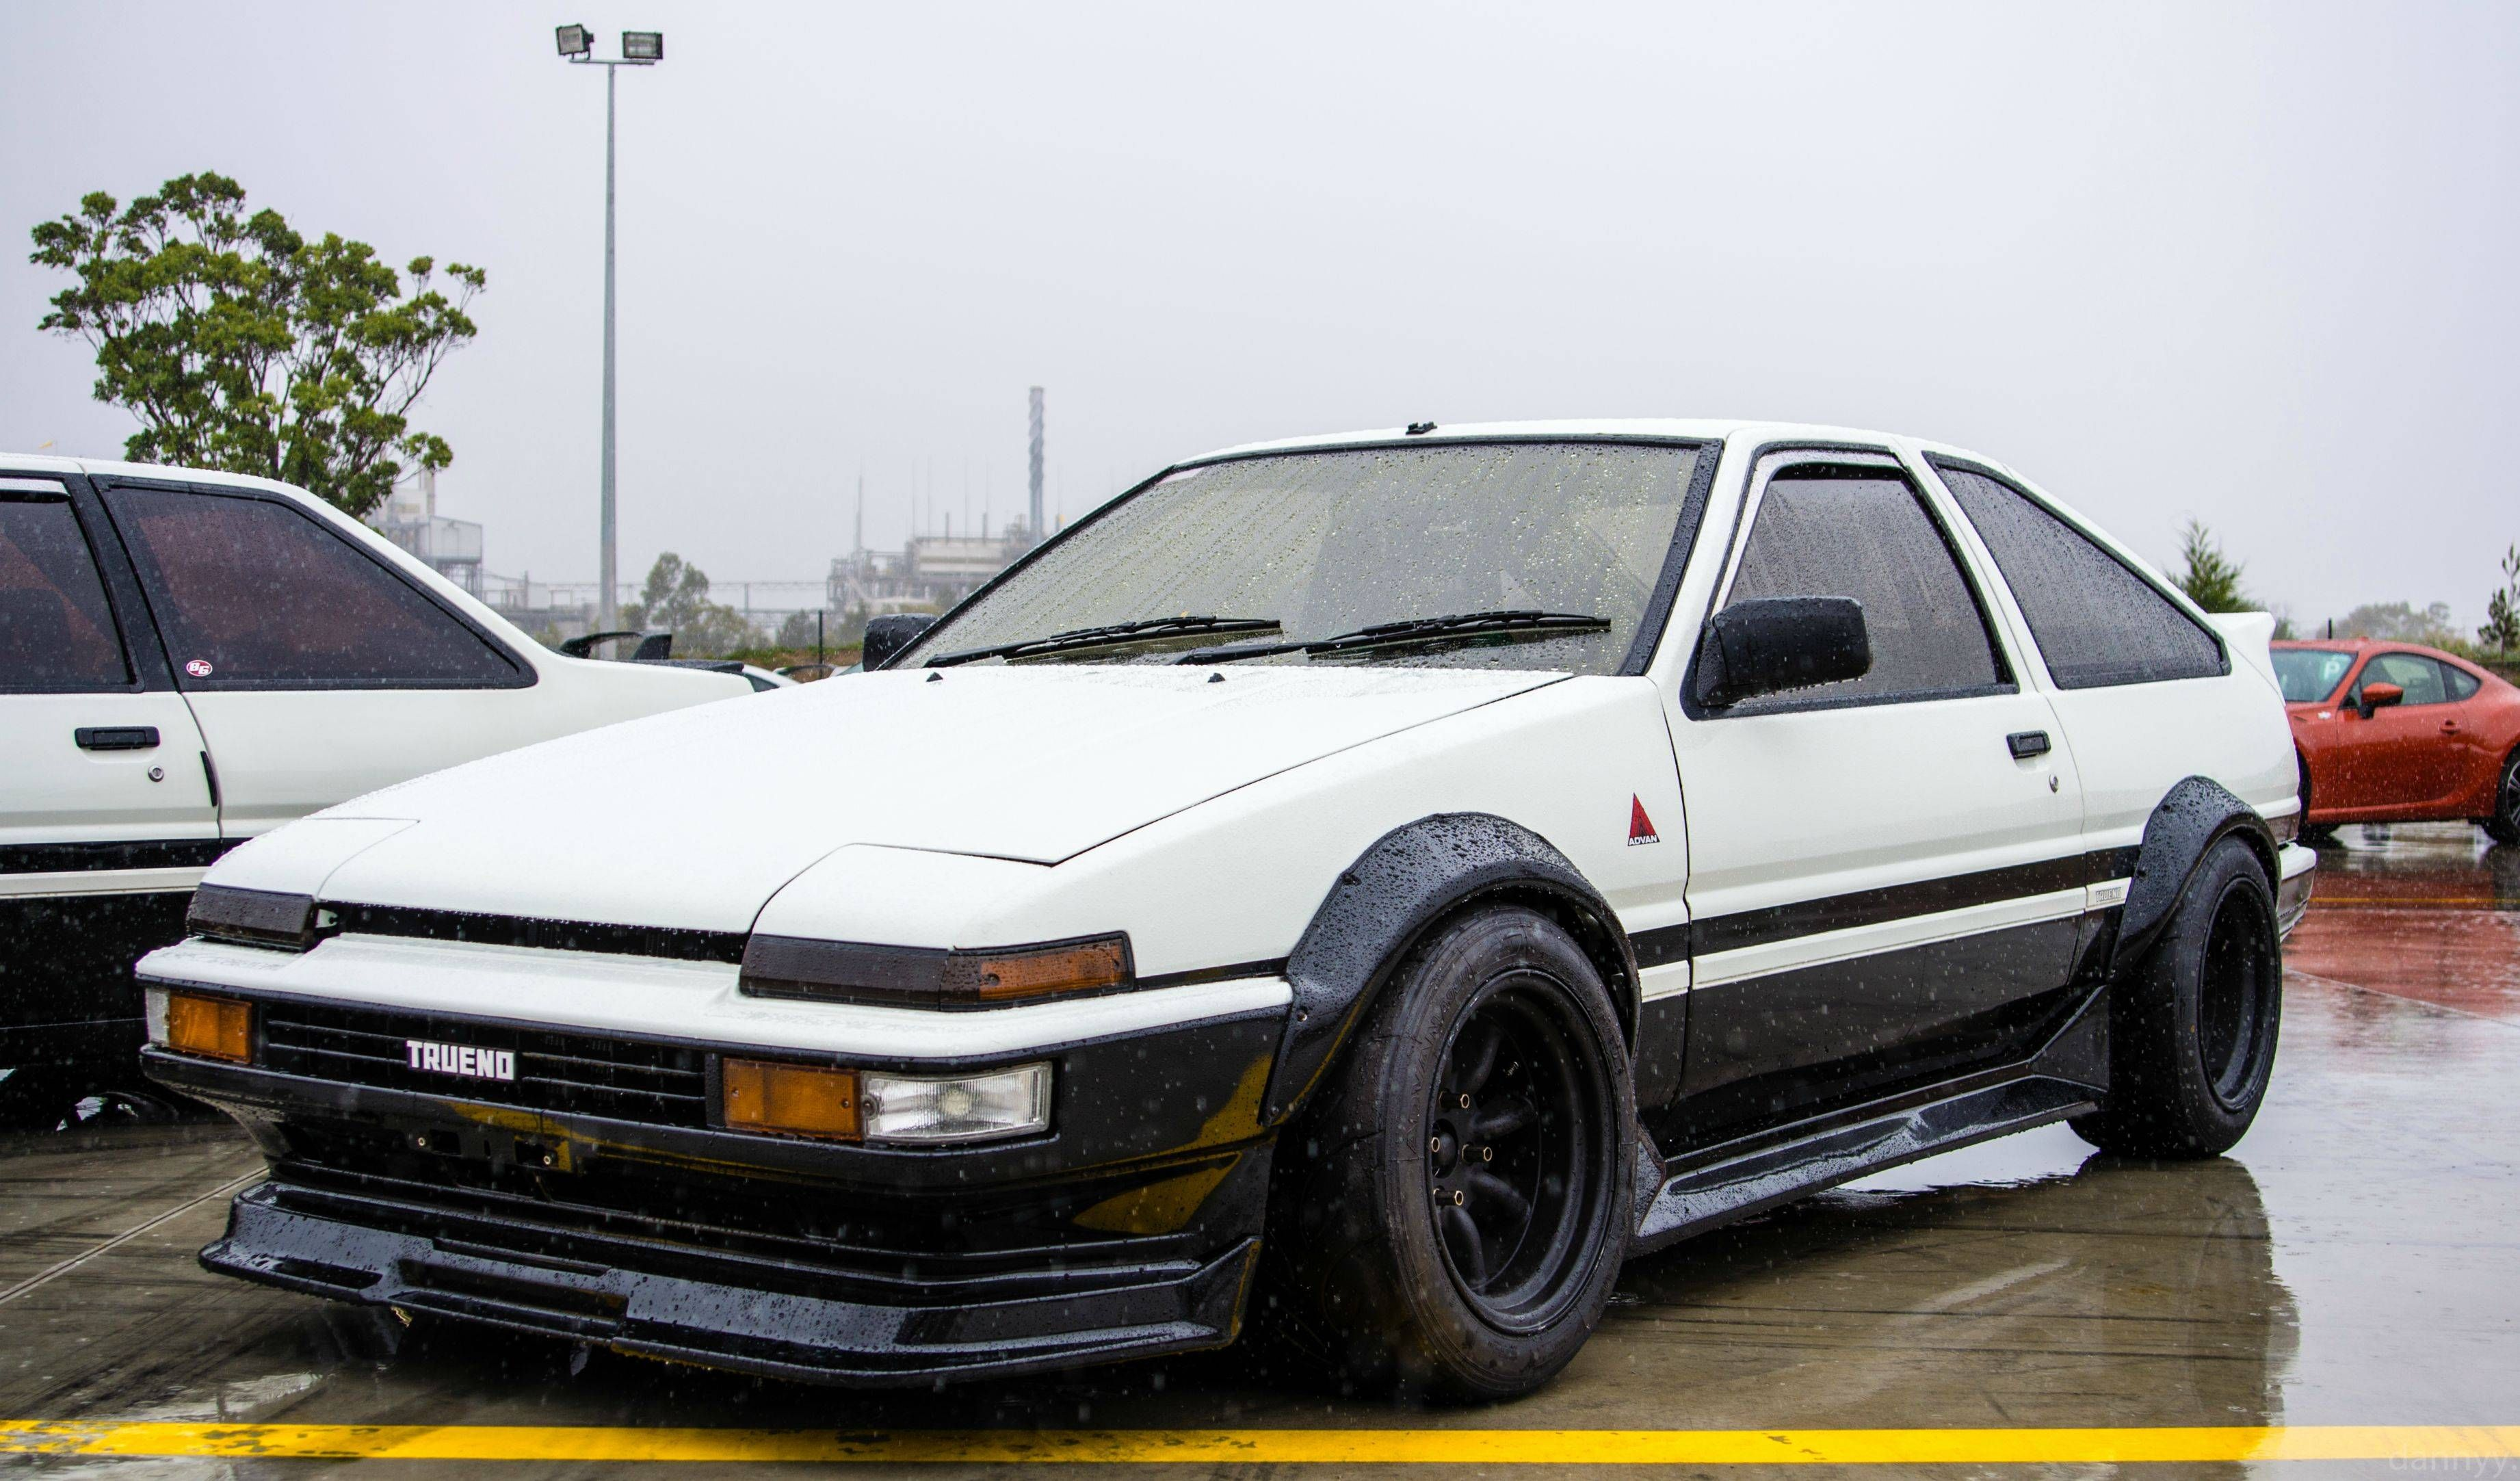 Toyota ae86 trueno 32 86 pinterest ae86 toyota and car - Ae86 initial d wallpaper ...